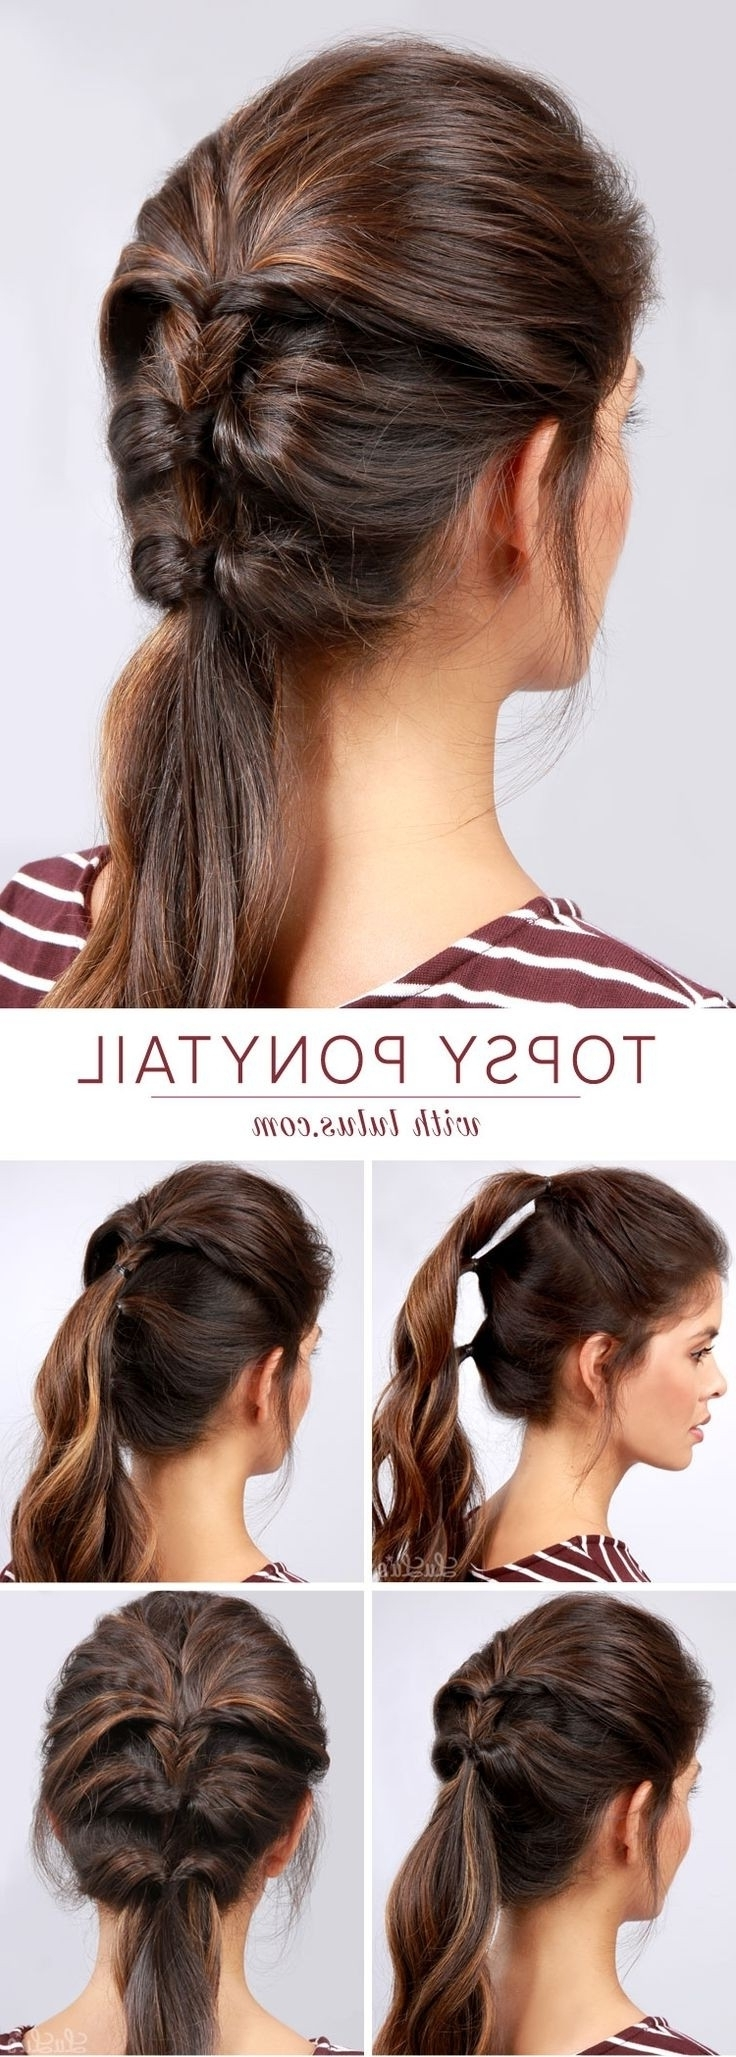 Most Popular Curly Pony Hairstyles For Ultra Long Hair Throughout 20 Ponytail Hairstyles: Discover Latest Ponytail Ideas Now (View 14 of 20)